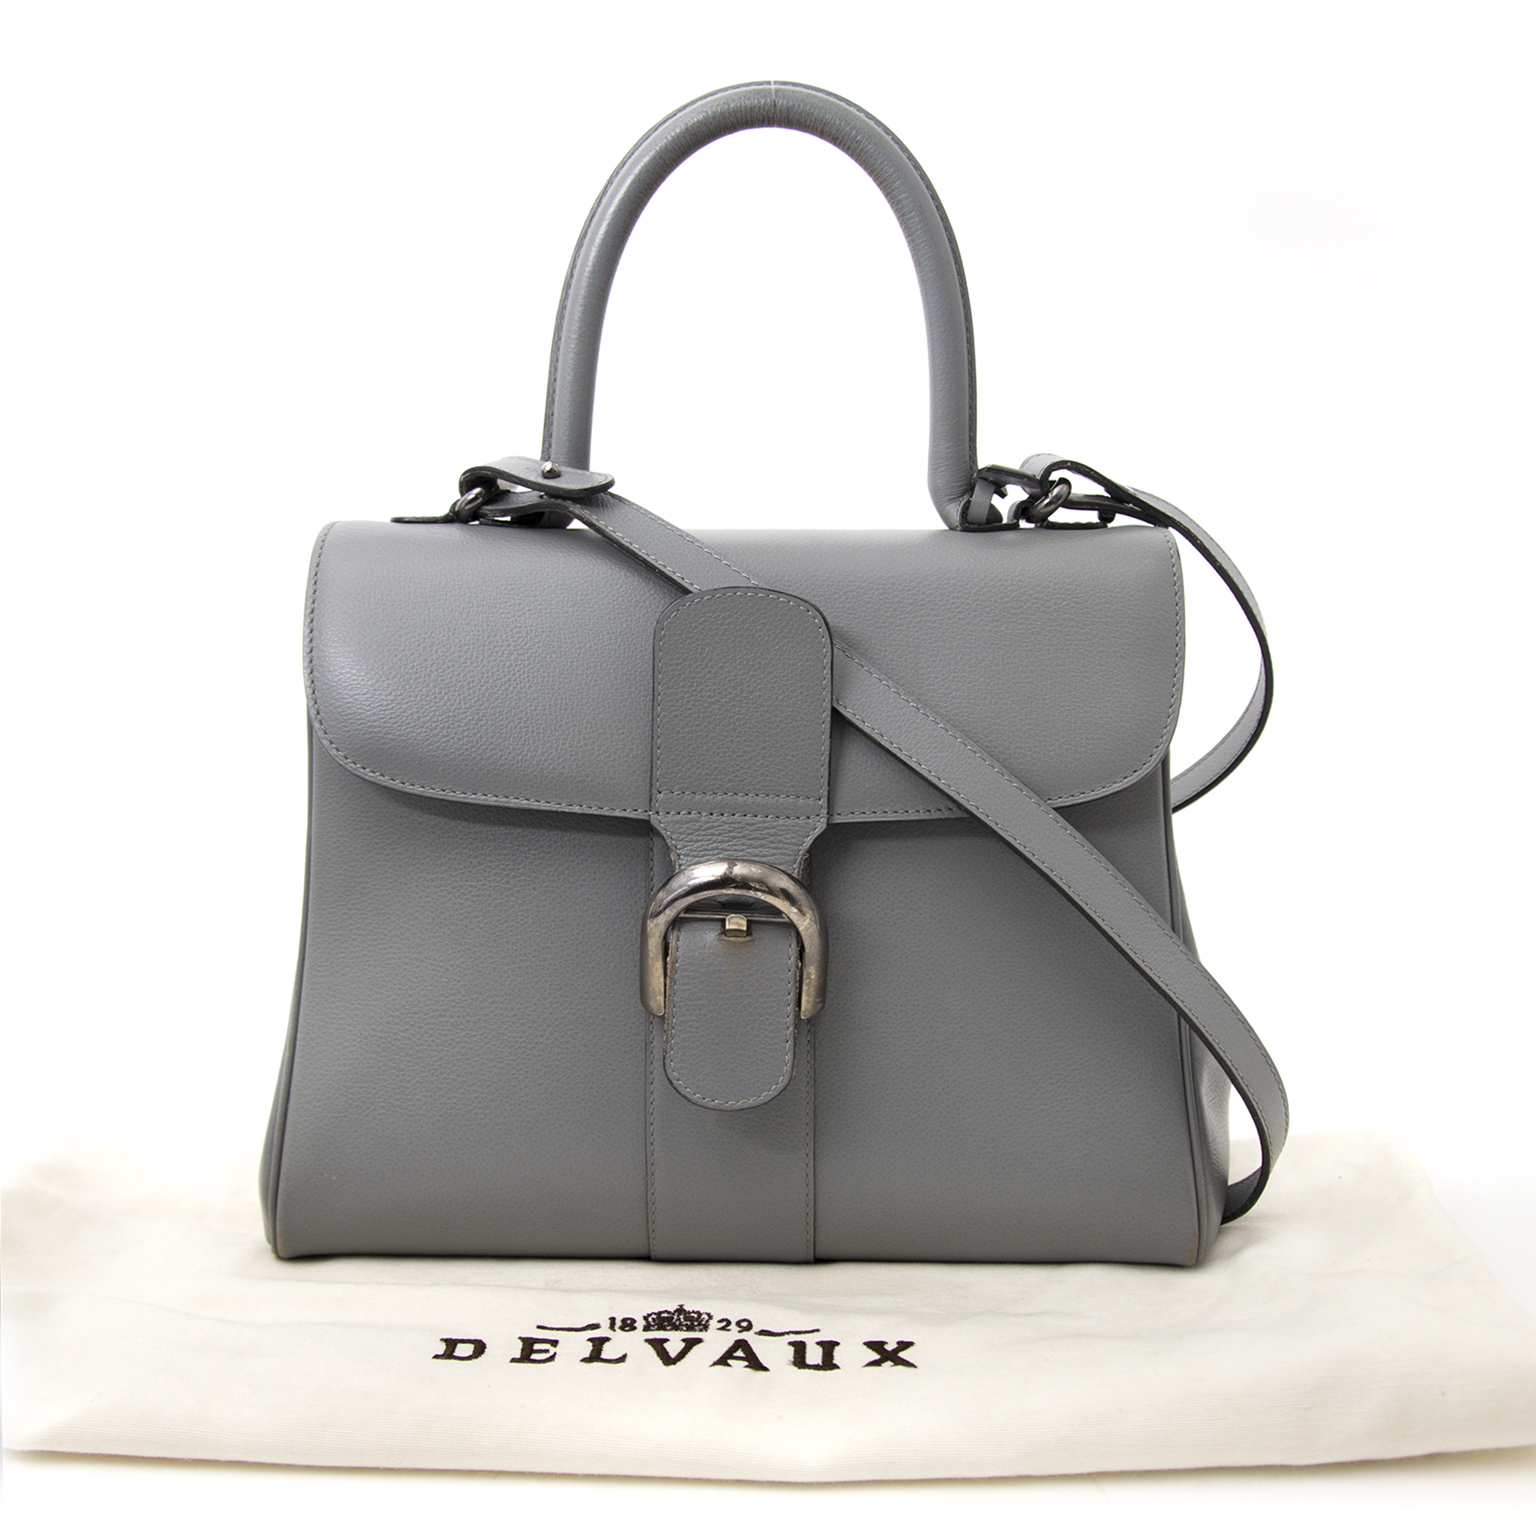 Buy your preloved Delvaux Brillant for the best price available online at Labellov timeless luxury.